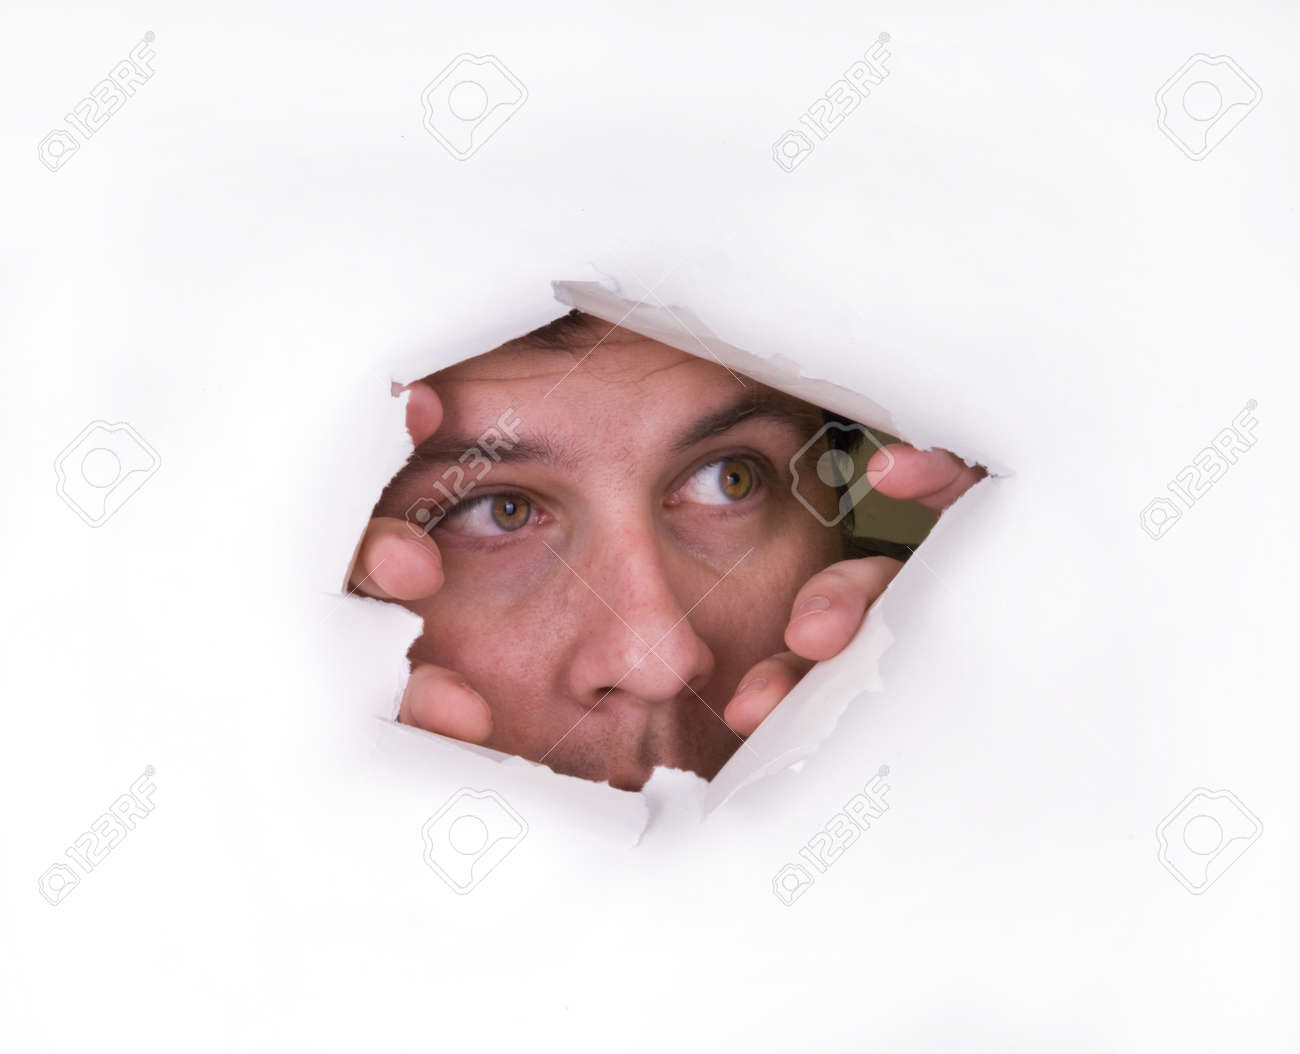 A man looks through a hole in the paper - 155940186